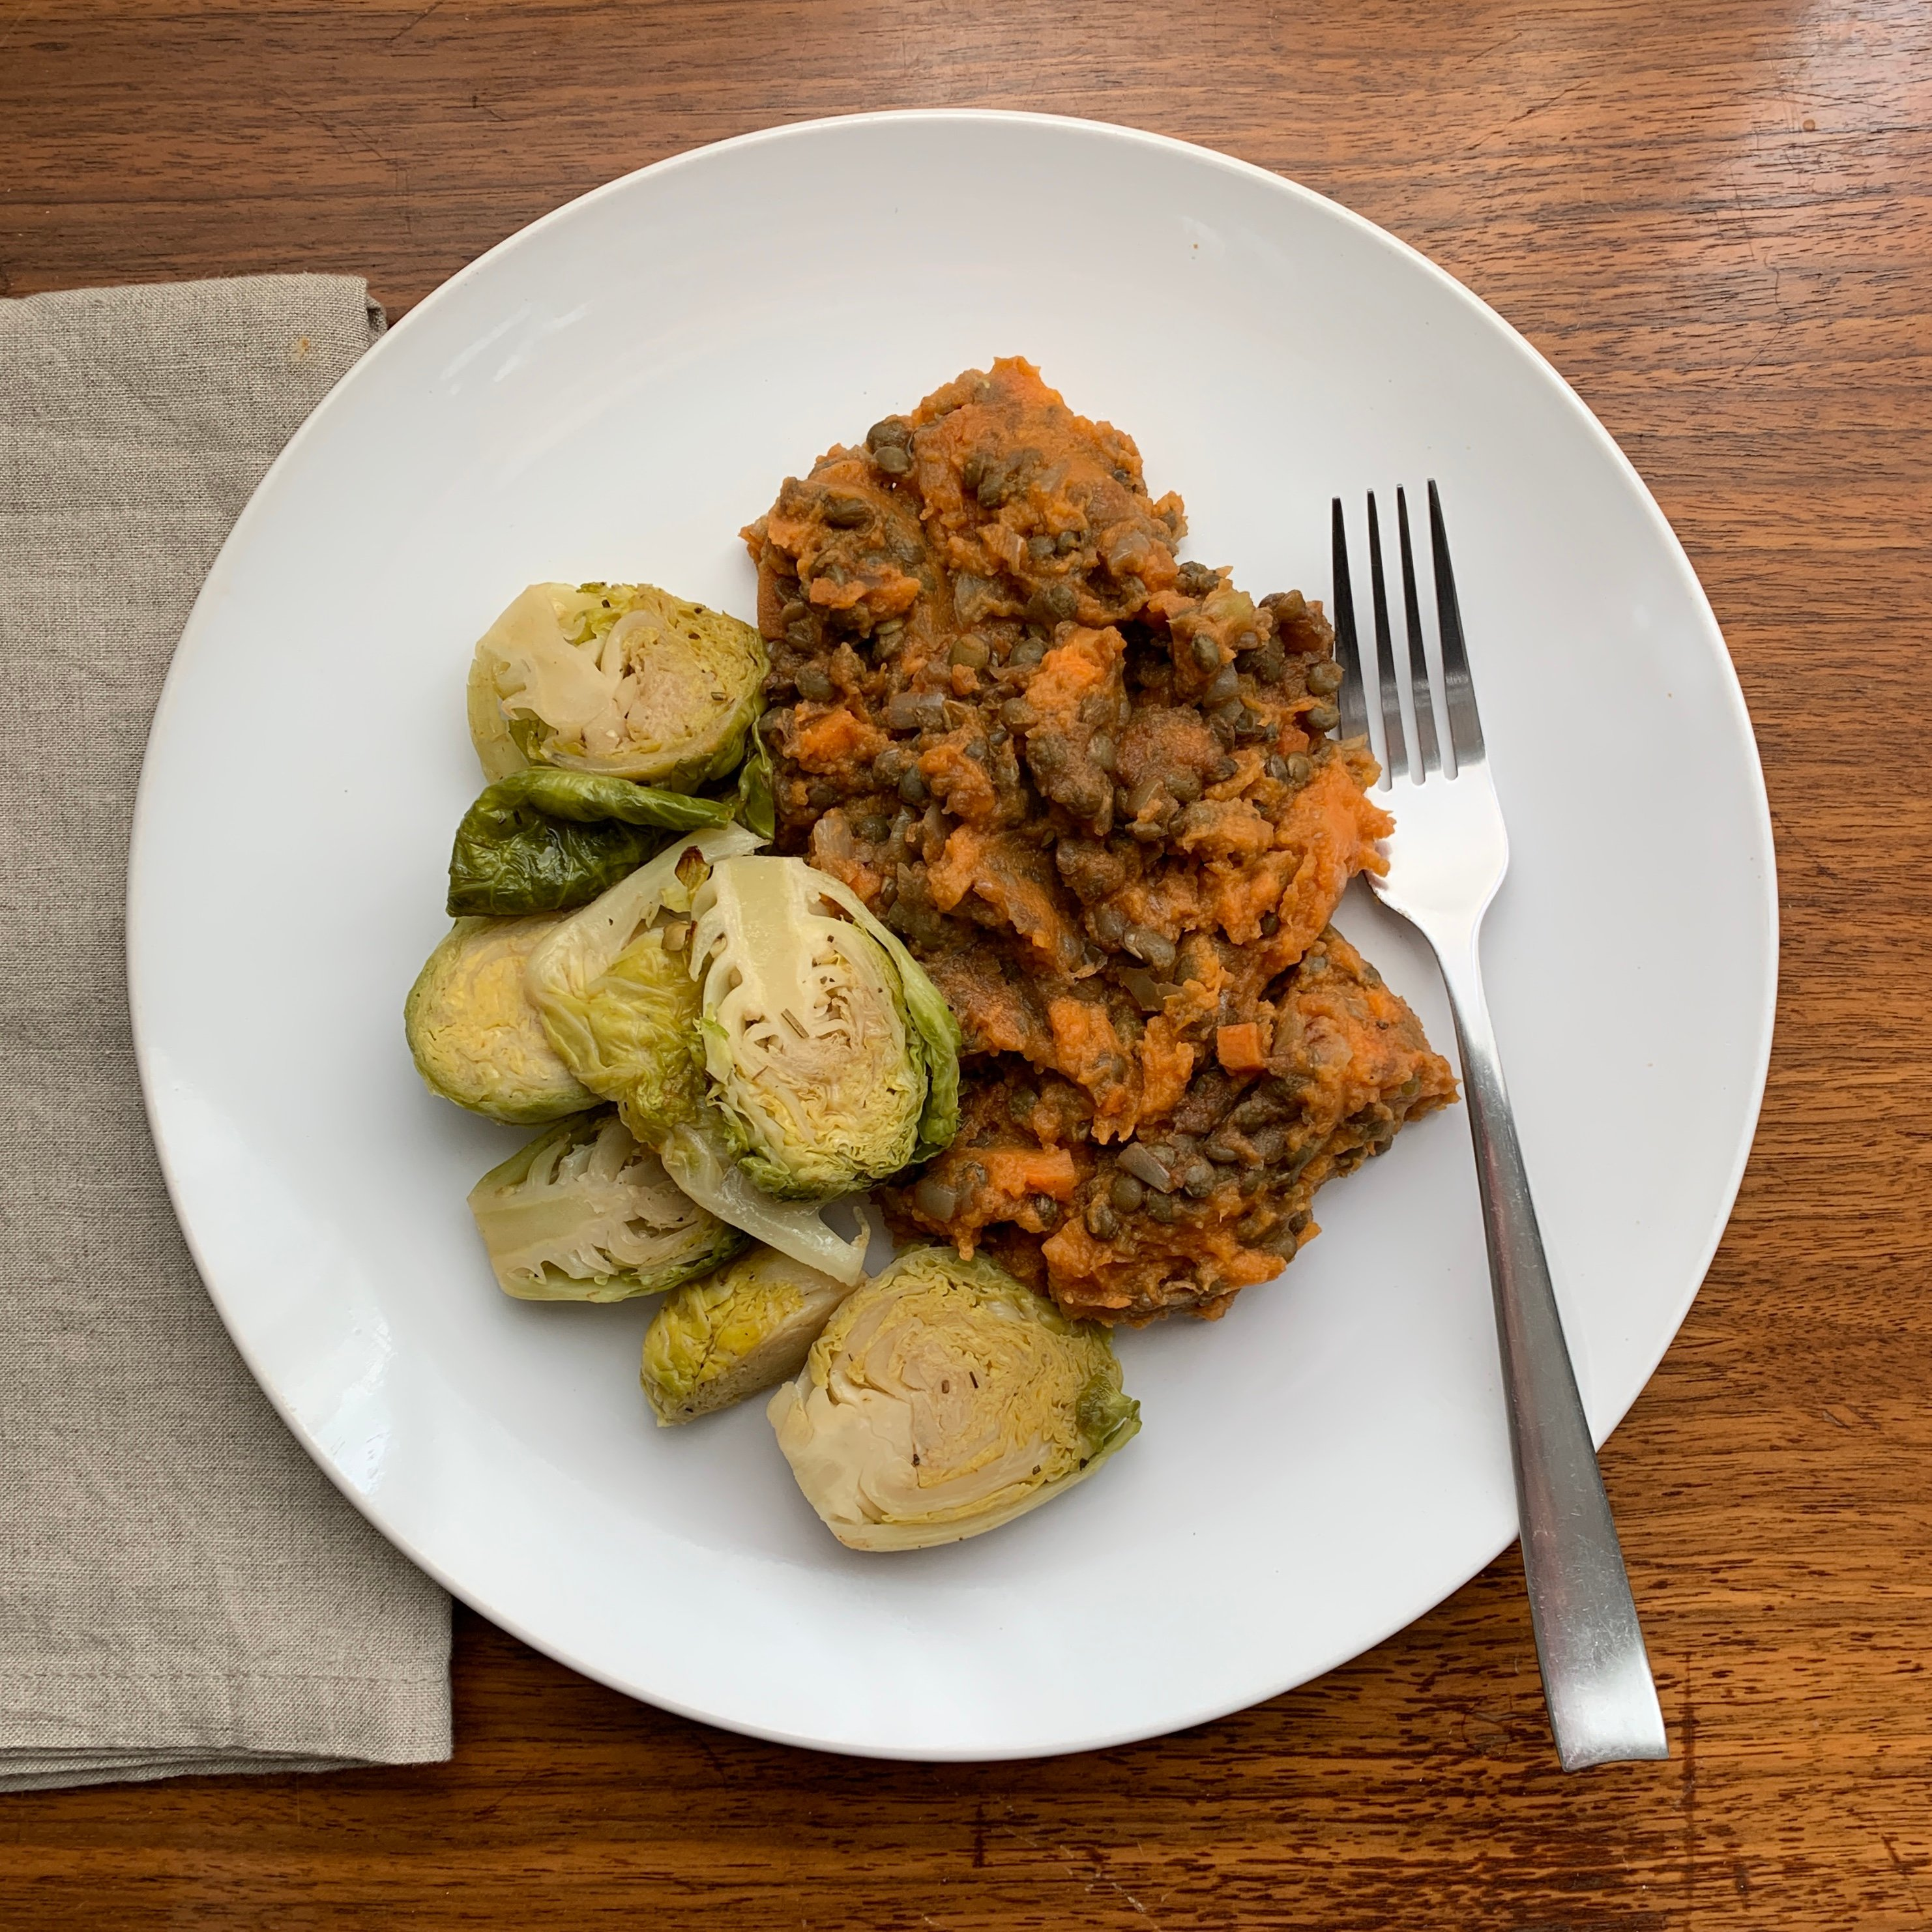 Spiced Lentils with Sweet Potato Mash on plate